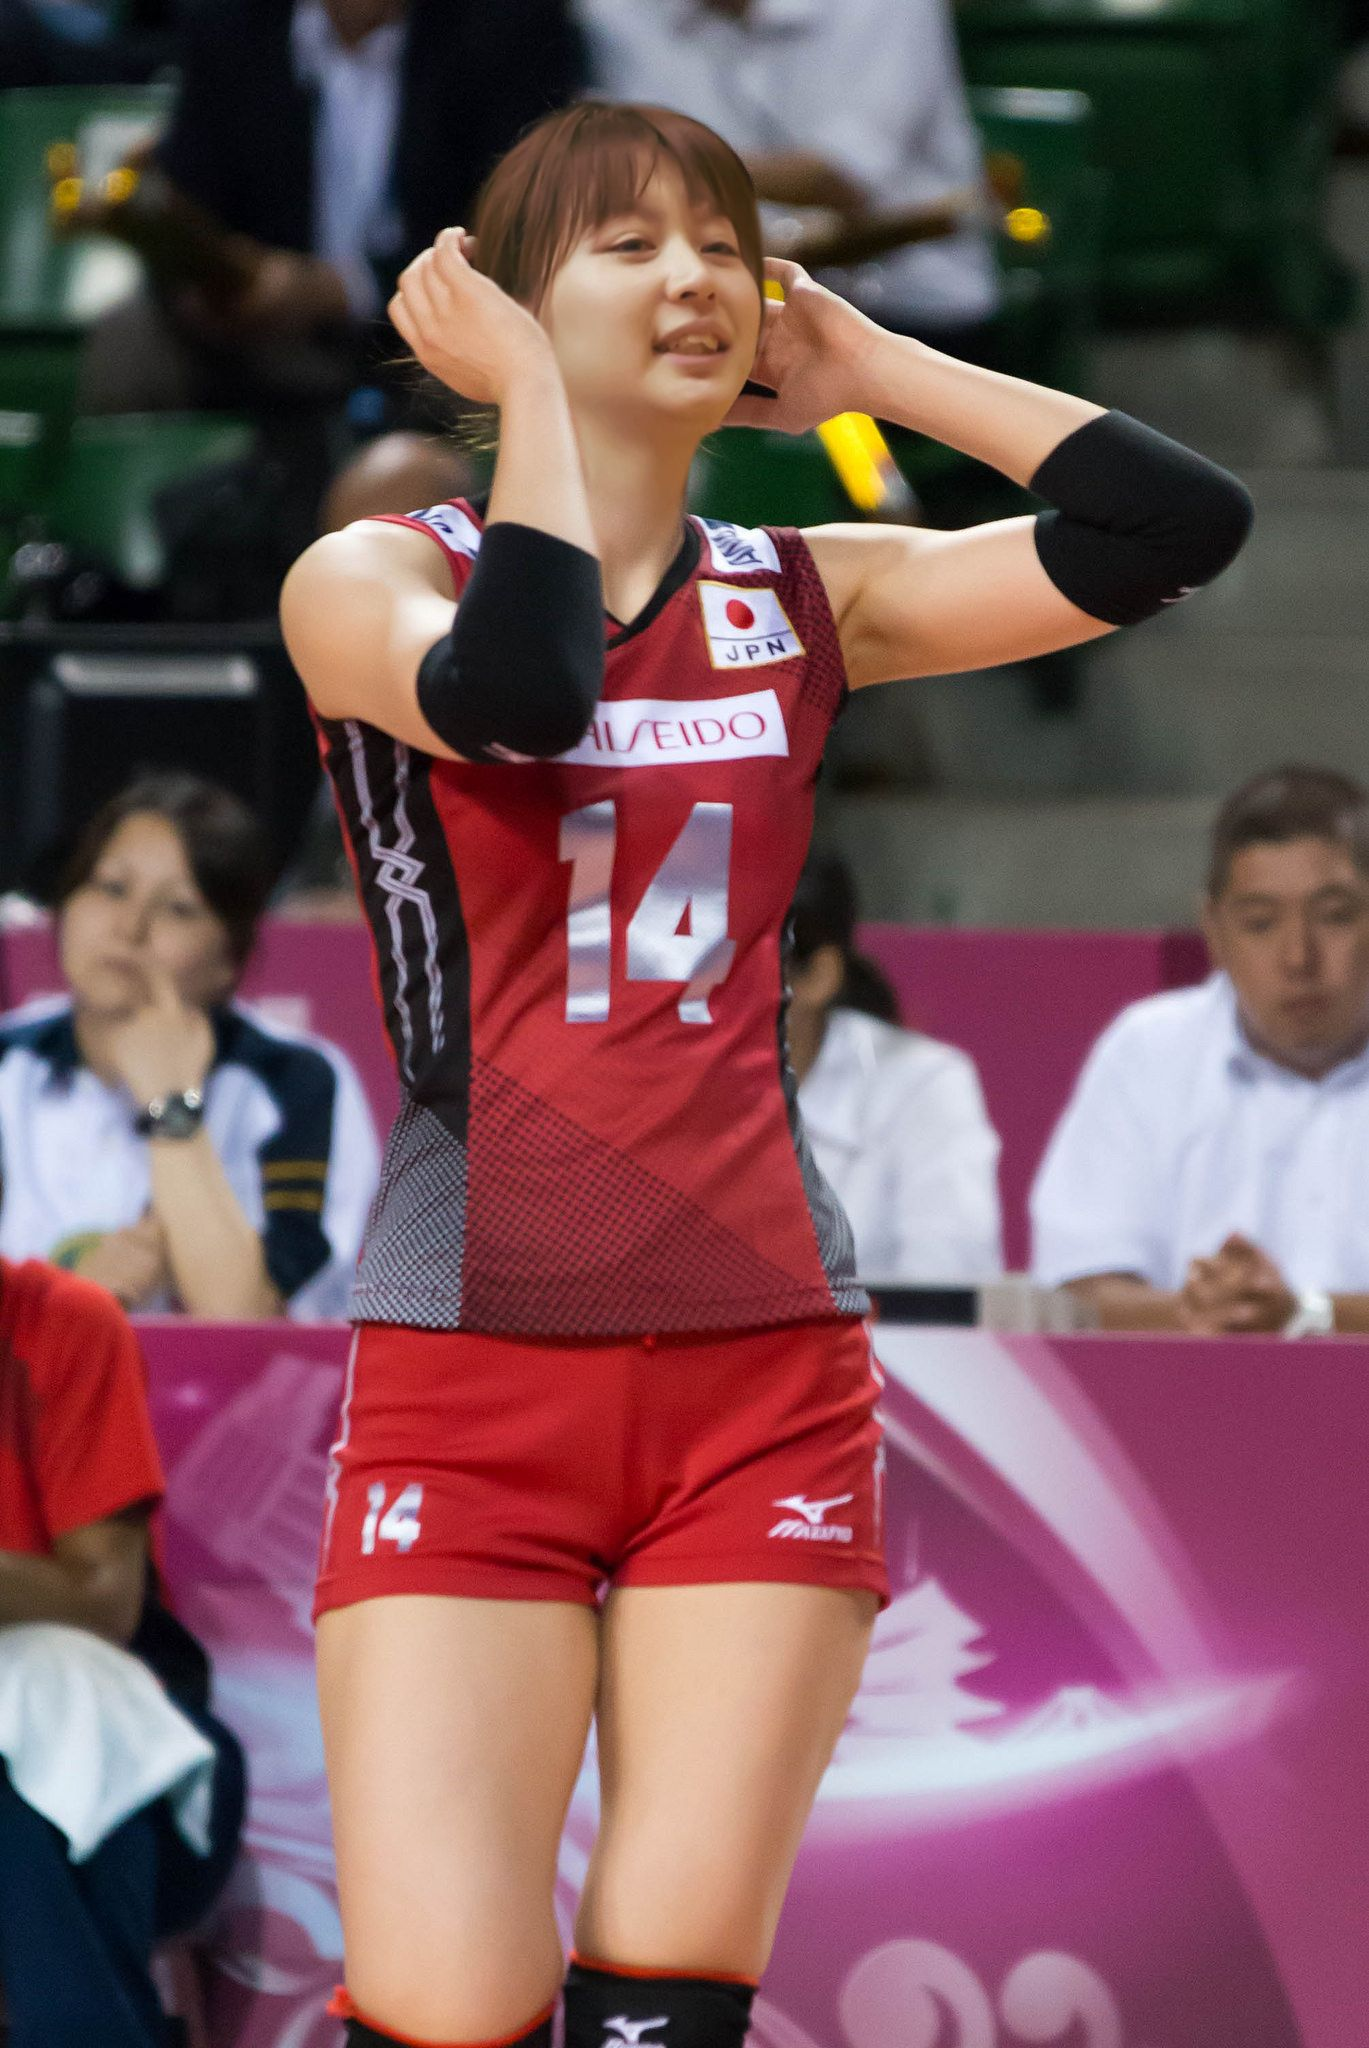 Pin Arthur Stone Volleyball Athlete And Sport Girl